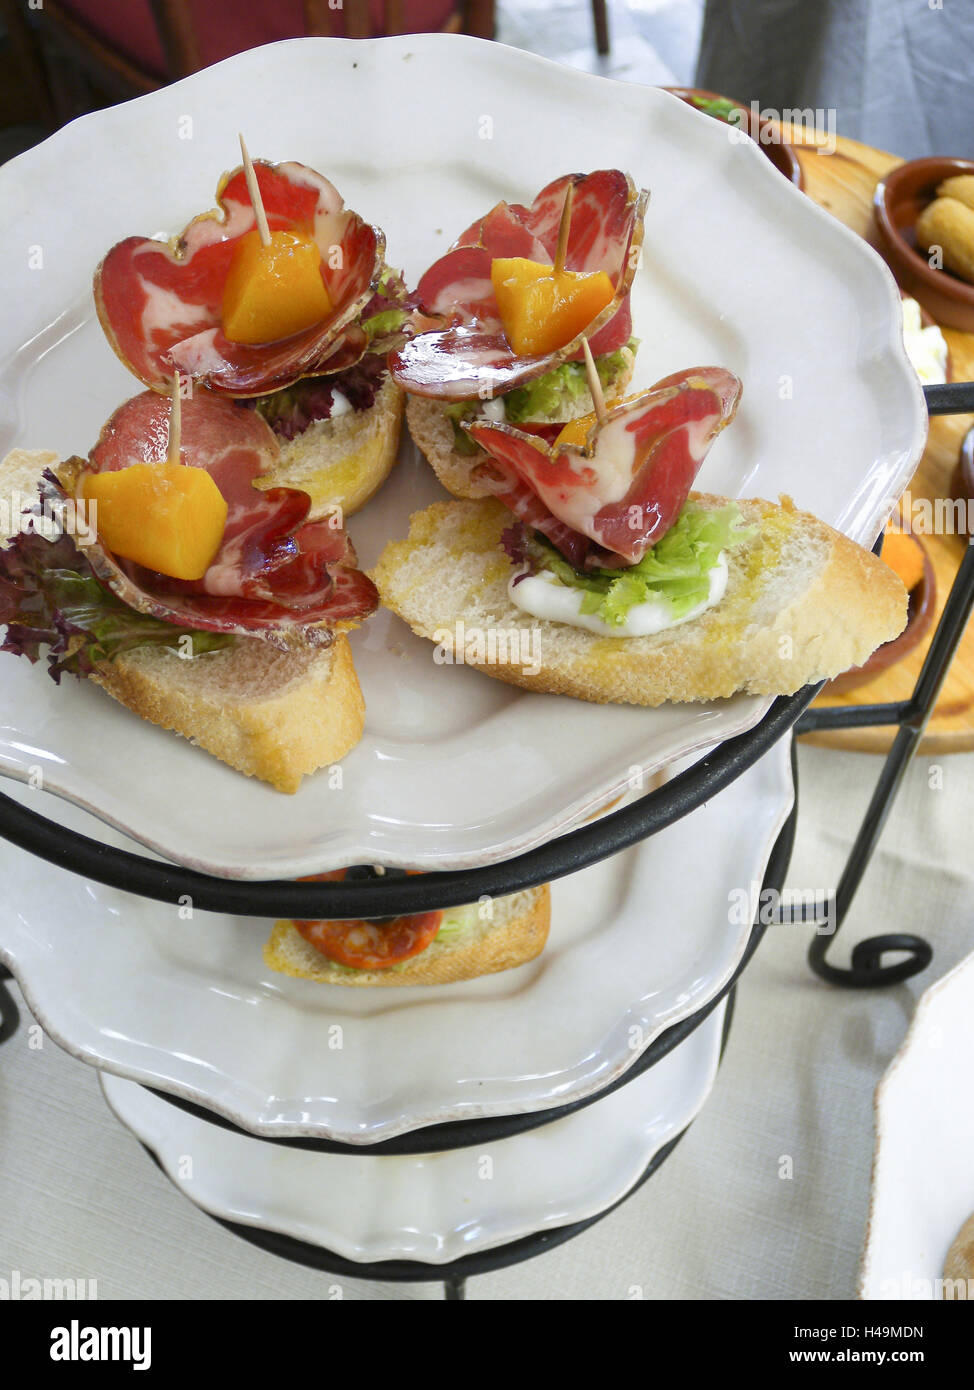 Etagere with Tapa, snack, food, Majorca, Spain, - Stock Image